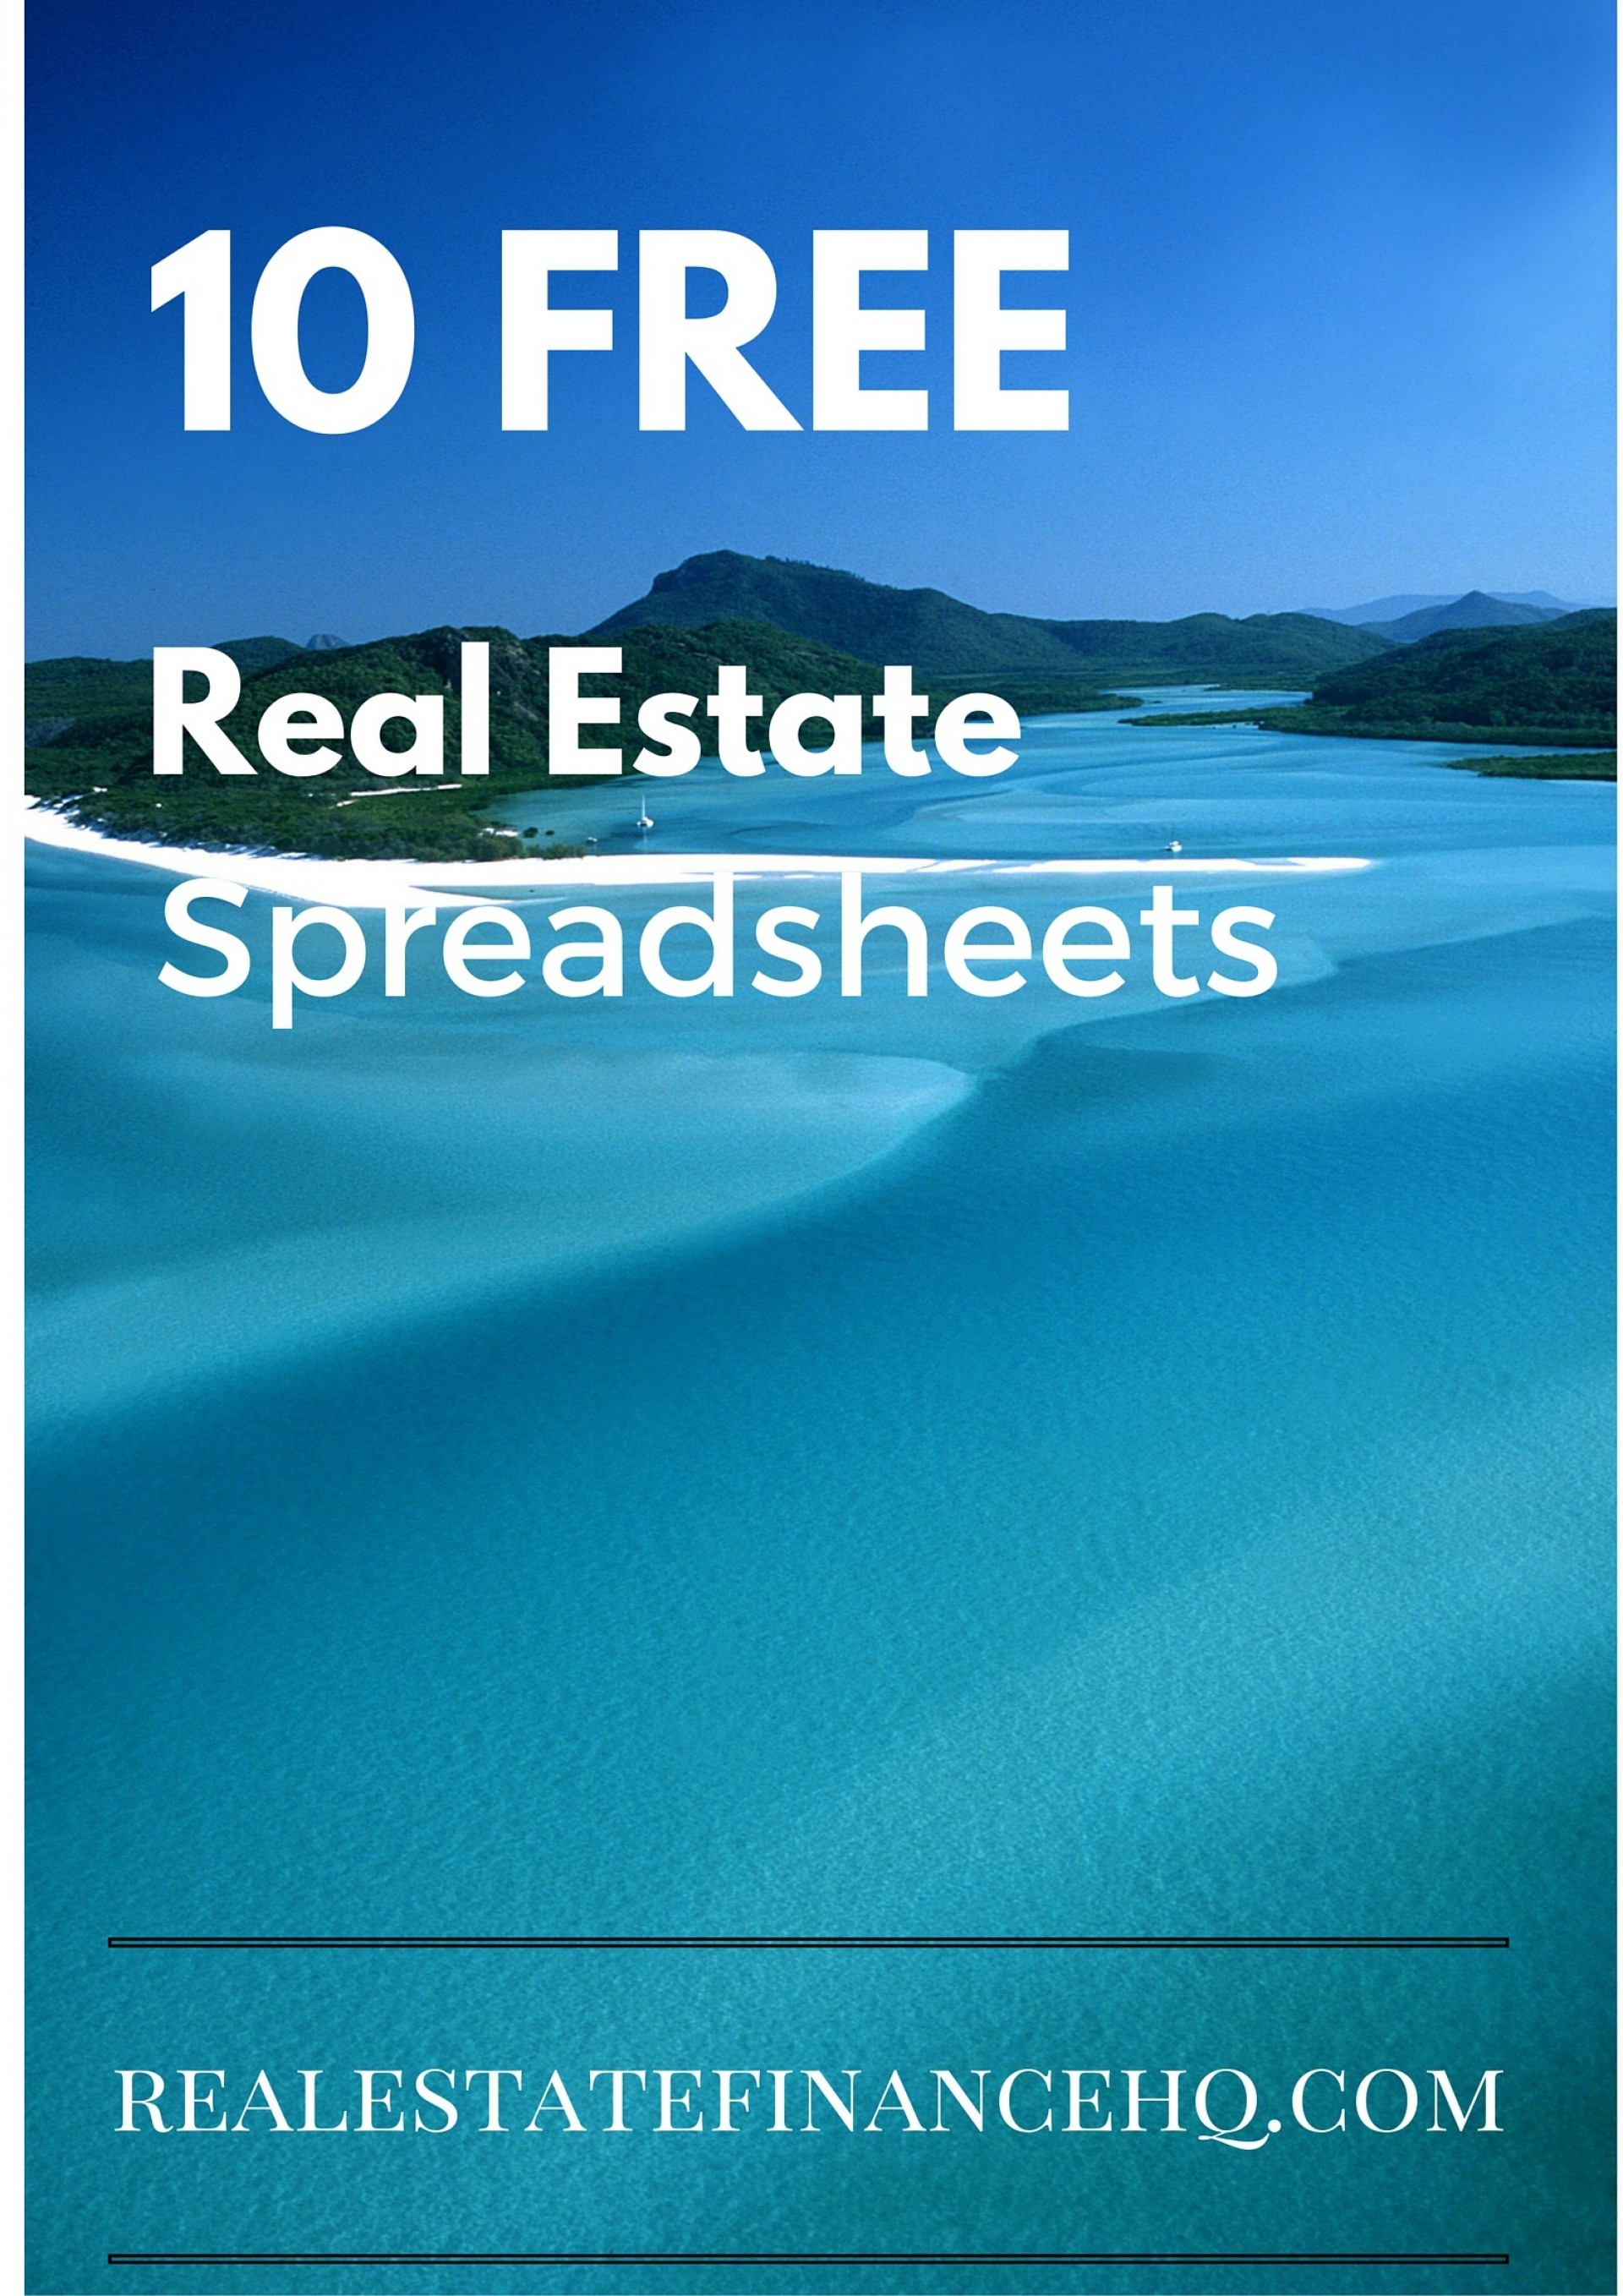 Property Development Feasibility Spreadsheet With 004 Template Ideas Real Estate Excel Templates Free Finance